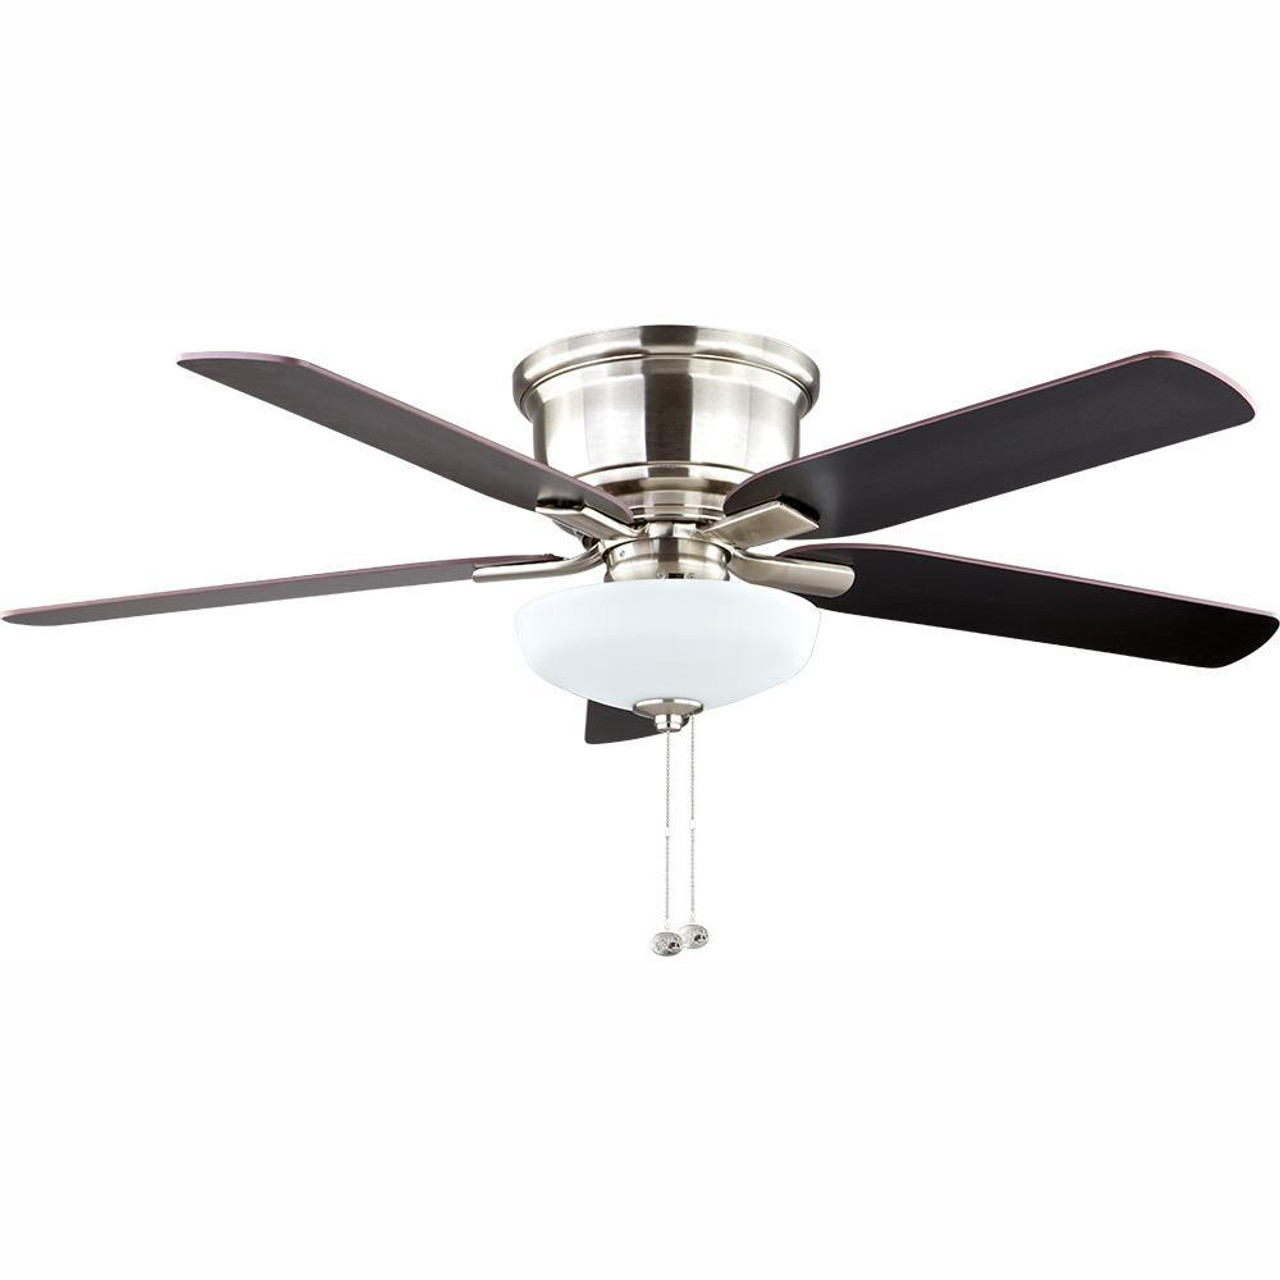 "Hampton Bay Holly Springs Low Profile 52"" LED Indoor Brushed Nickel Ceiling Fan"